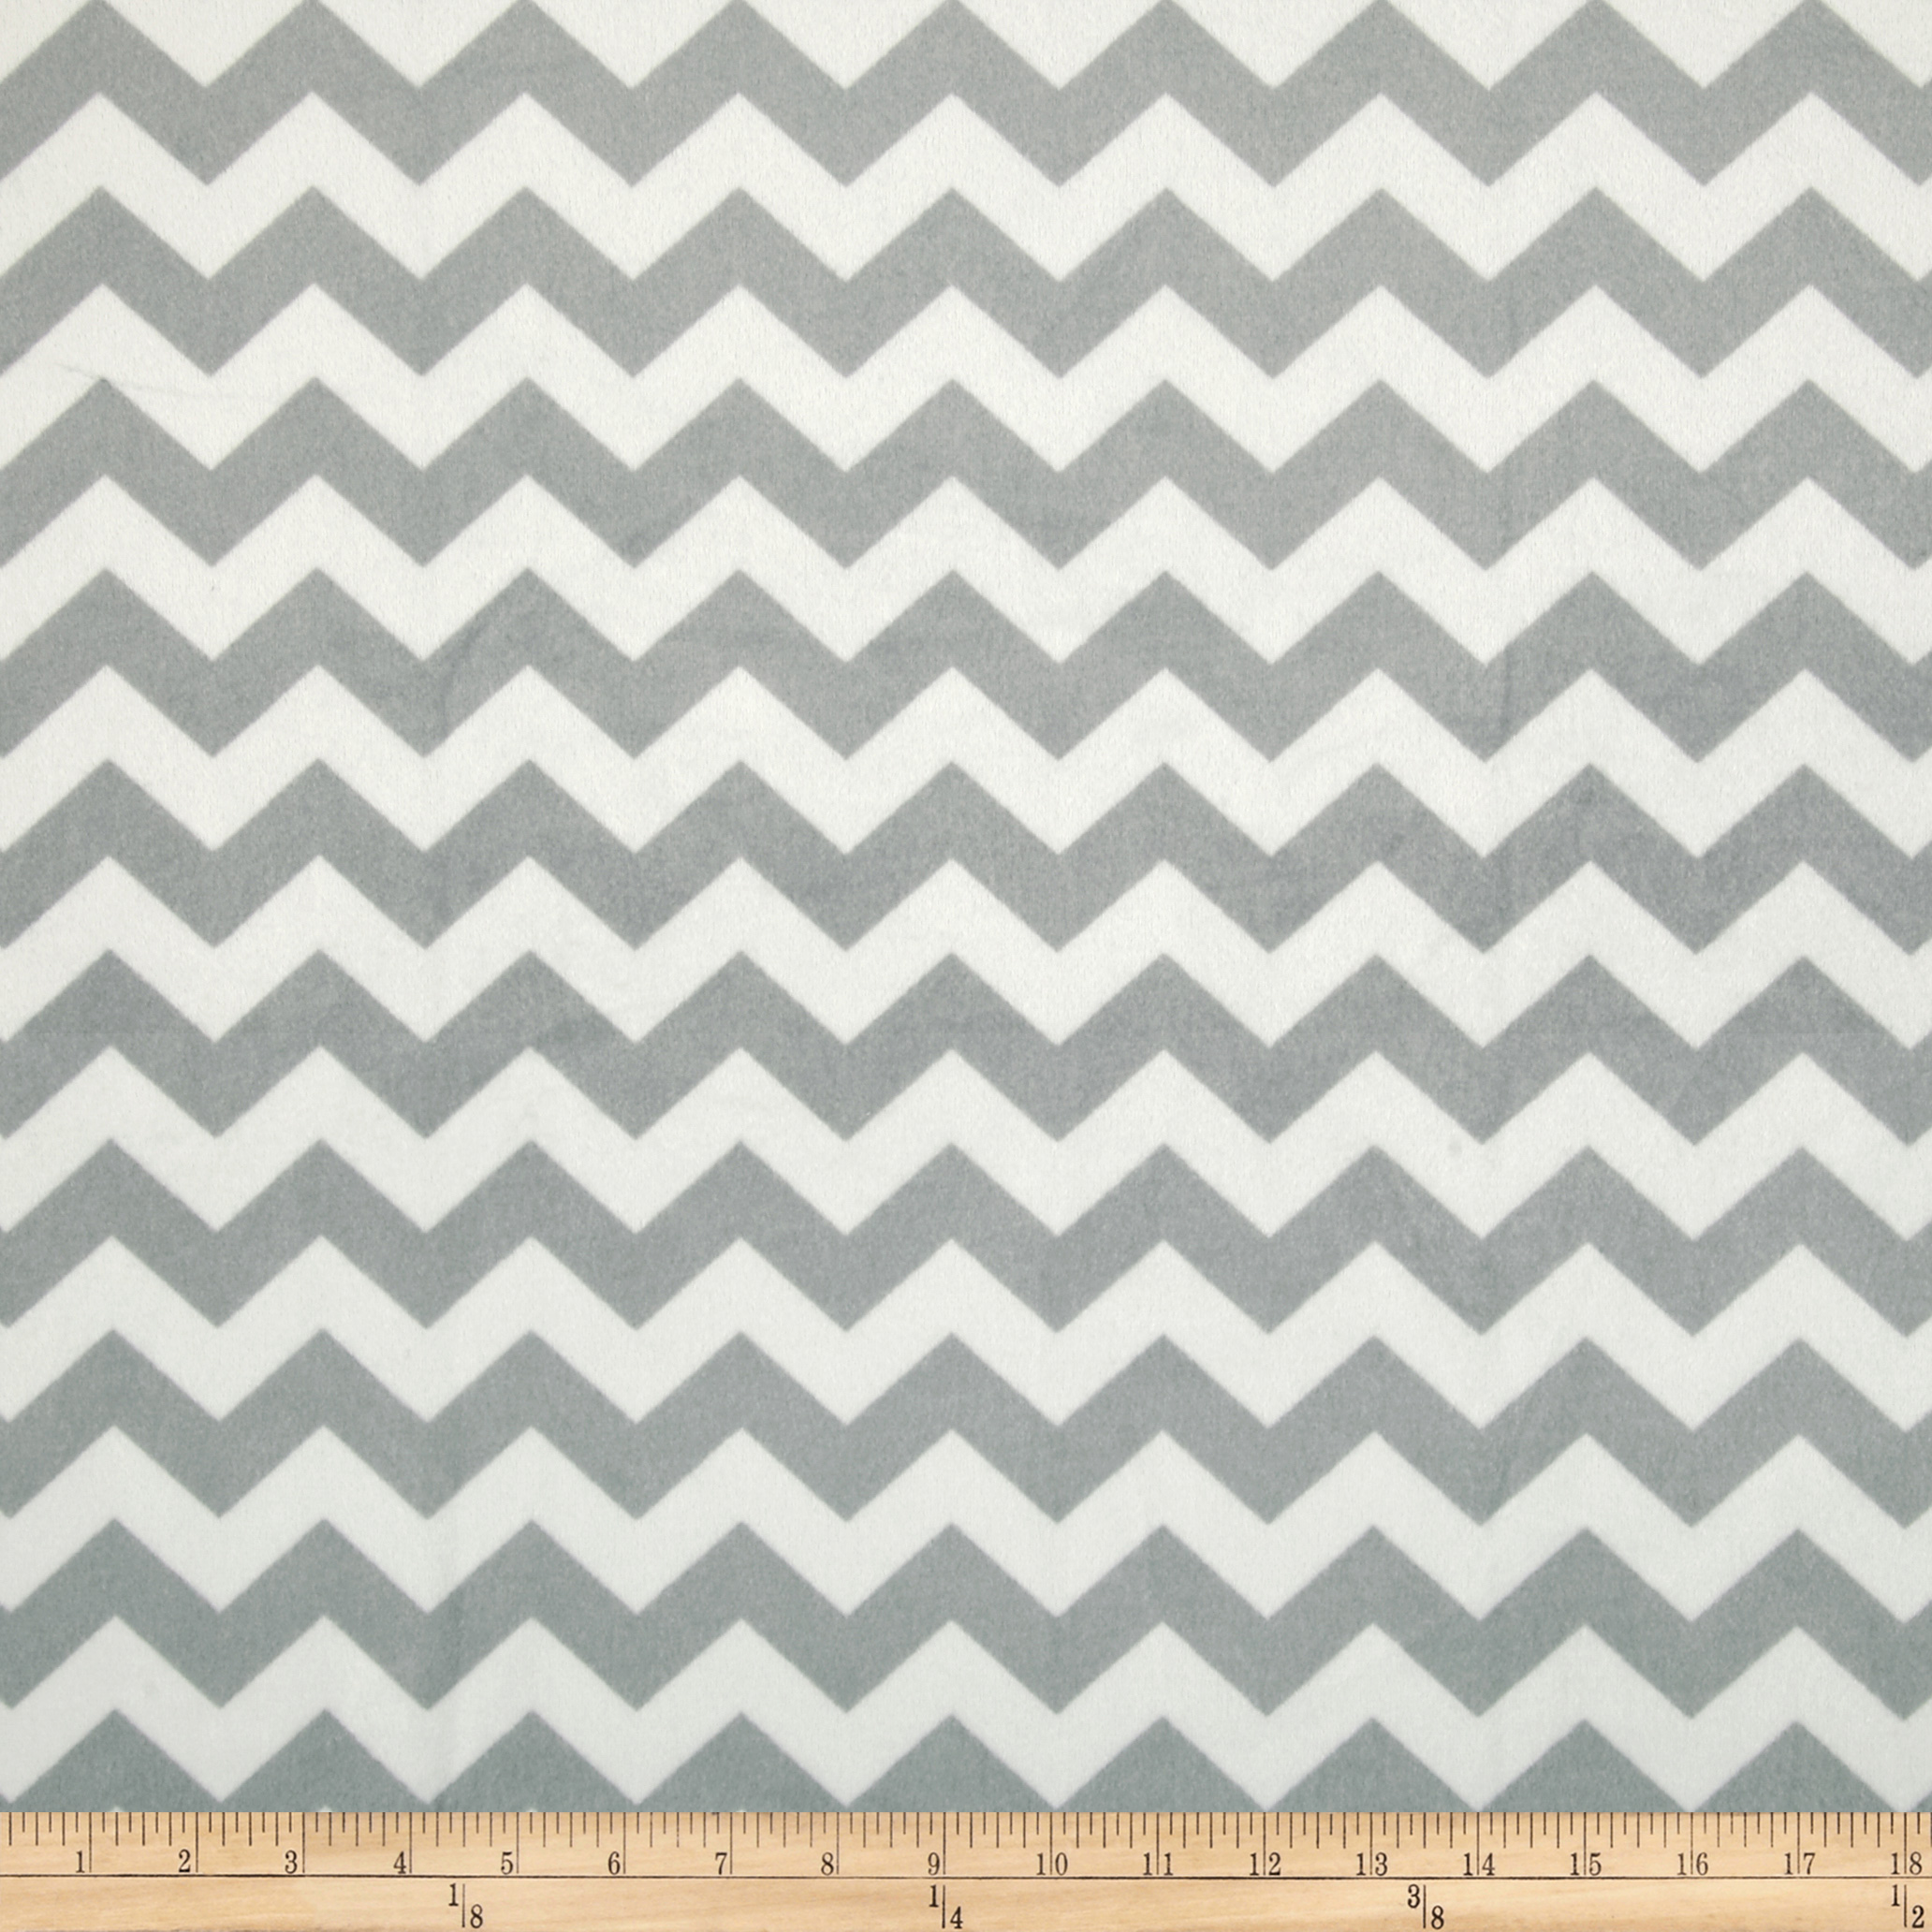 Riley Blake Dreamy Minky Medium Chevron Grey Fabric